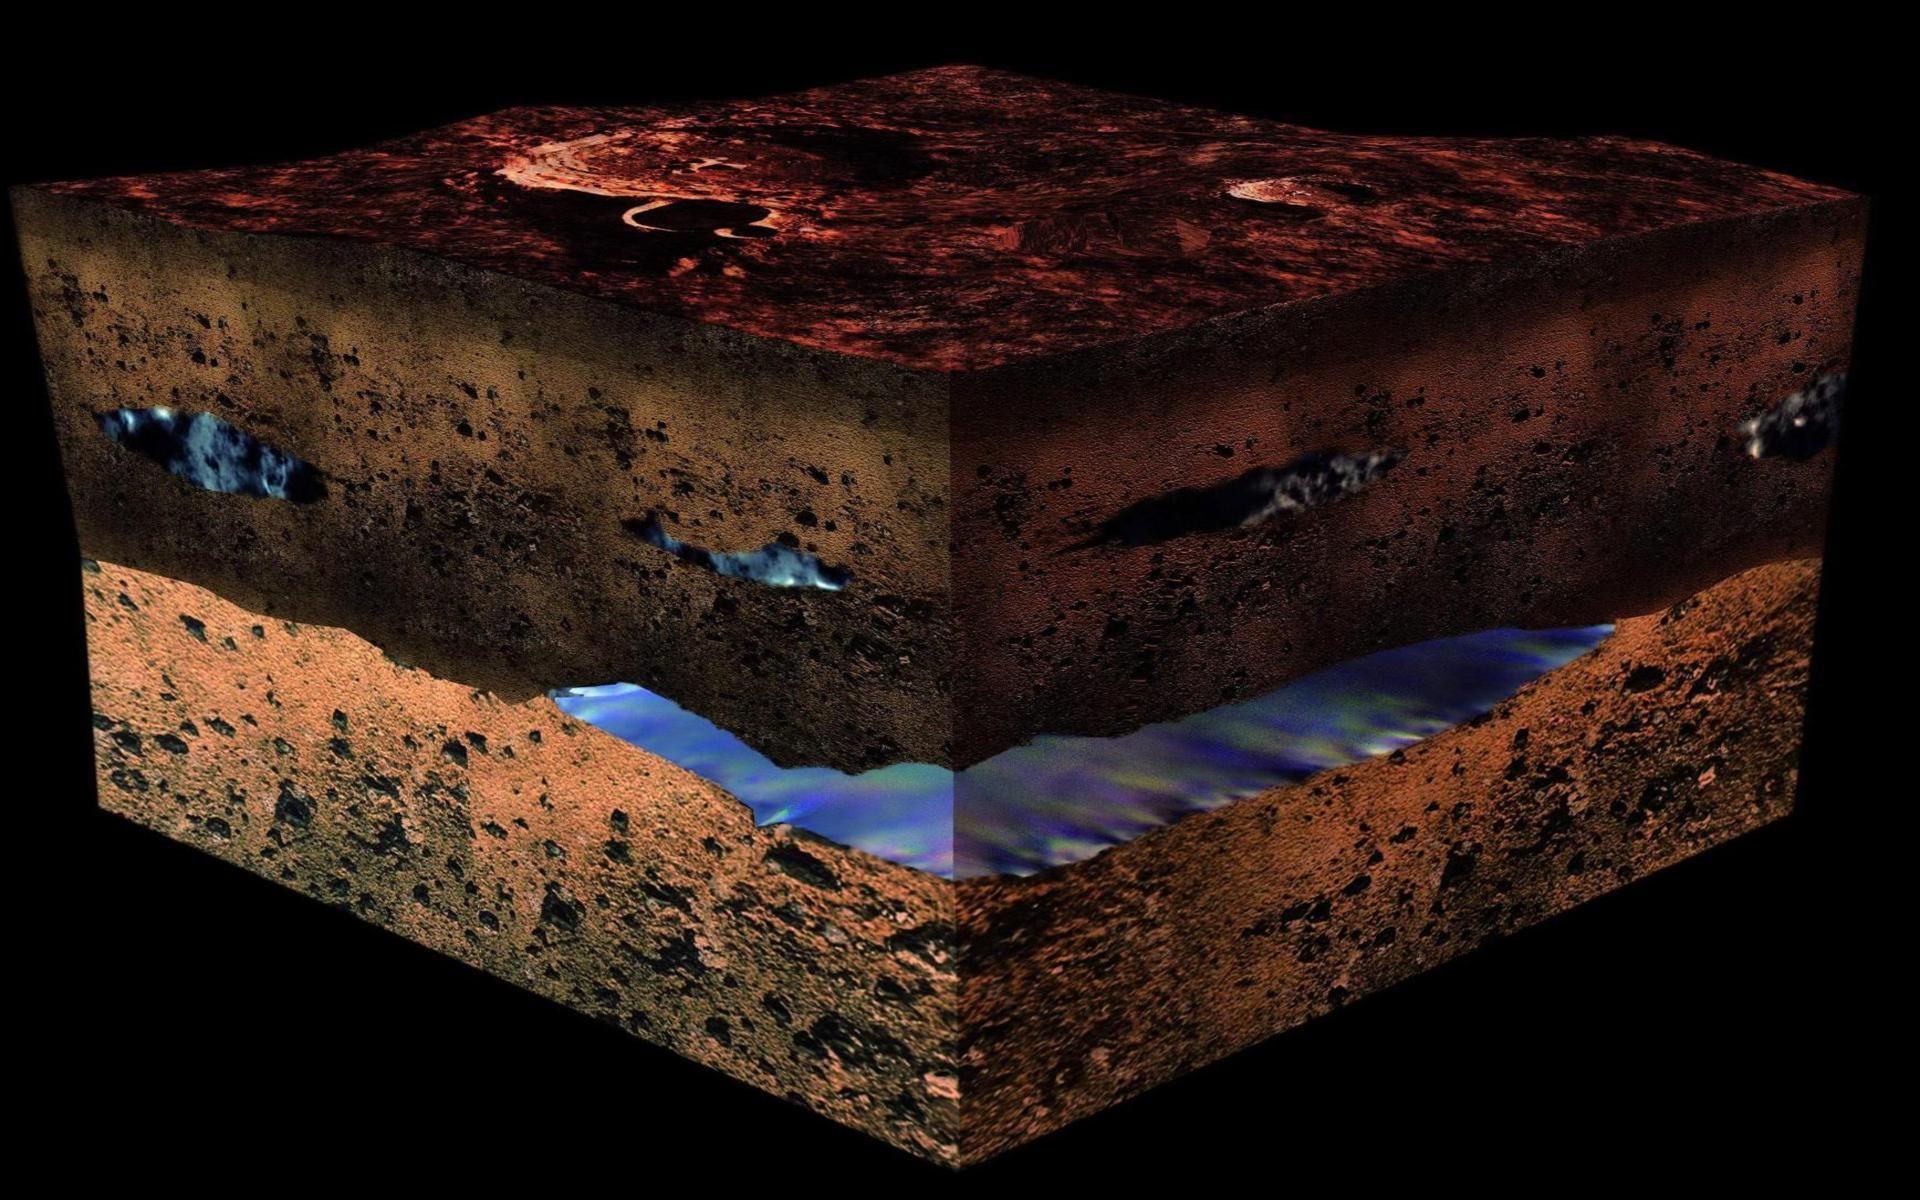 Water under the martian surface geology science testing method .